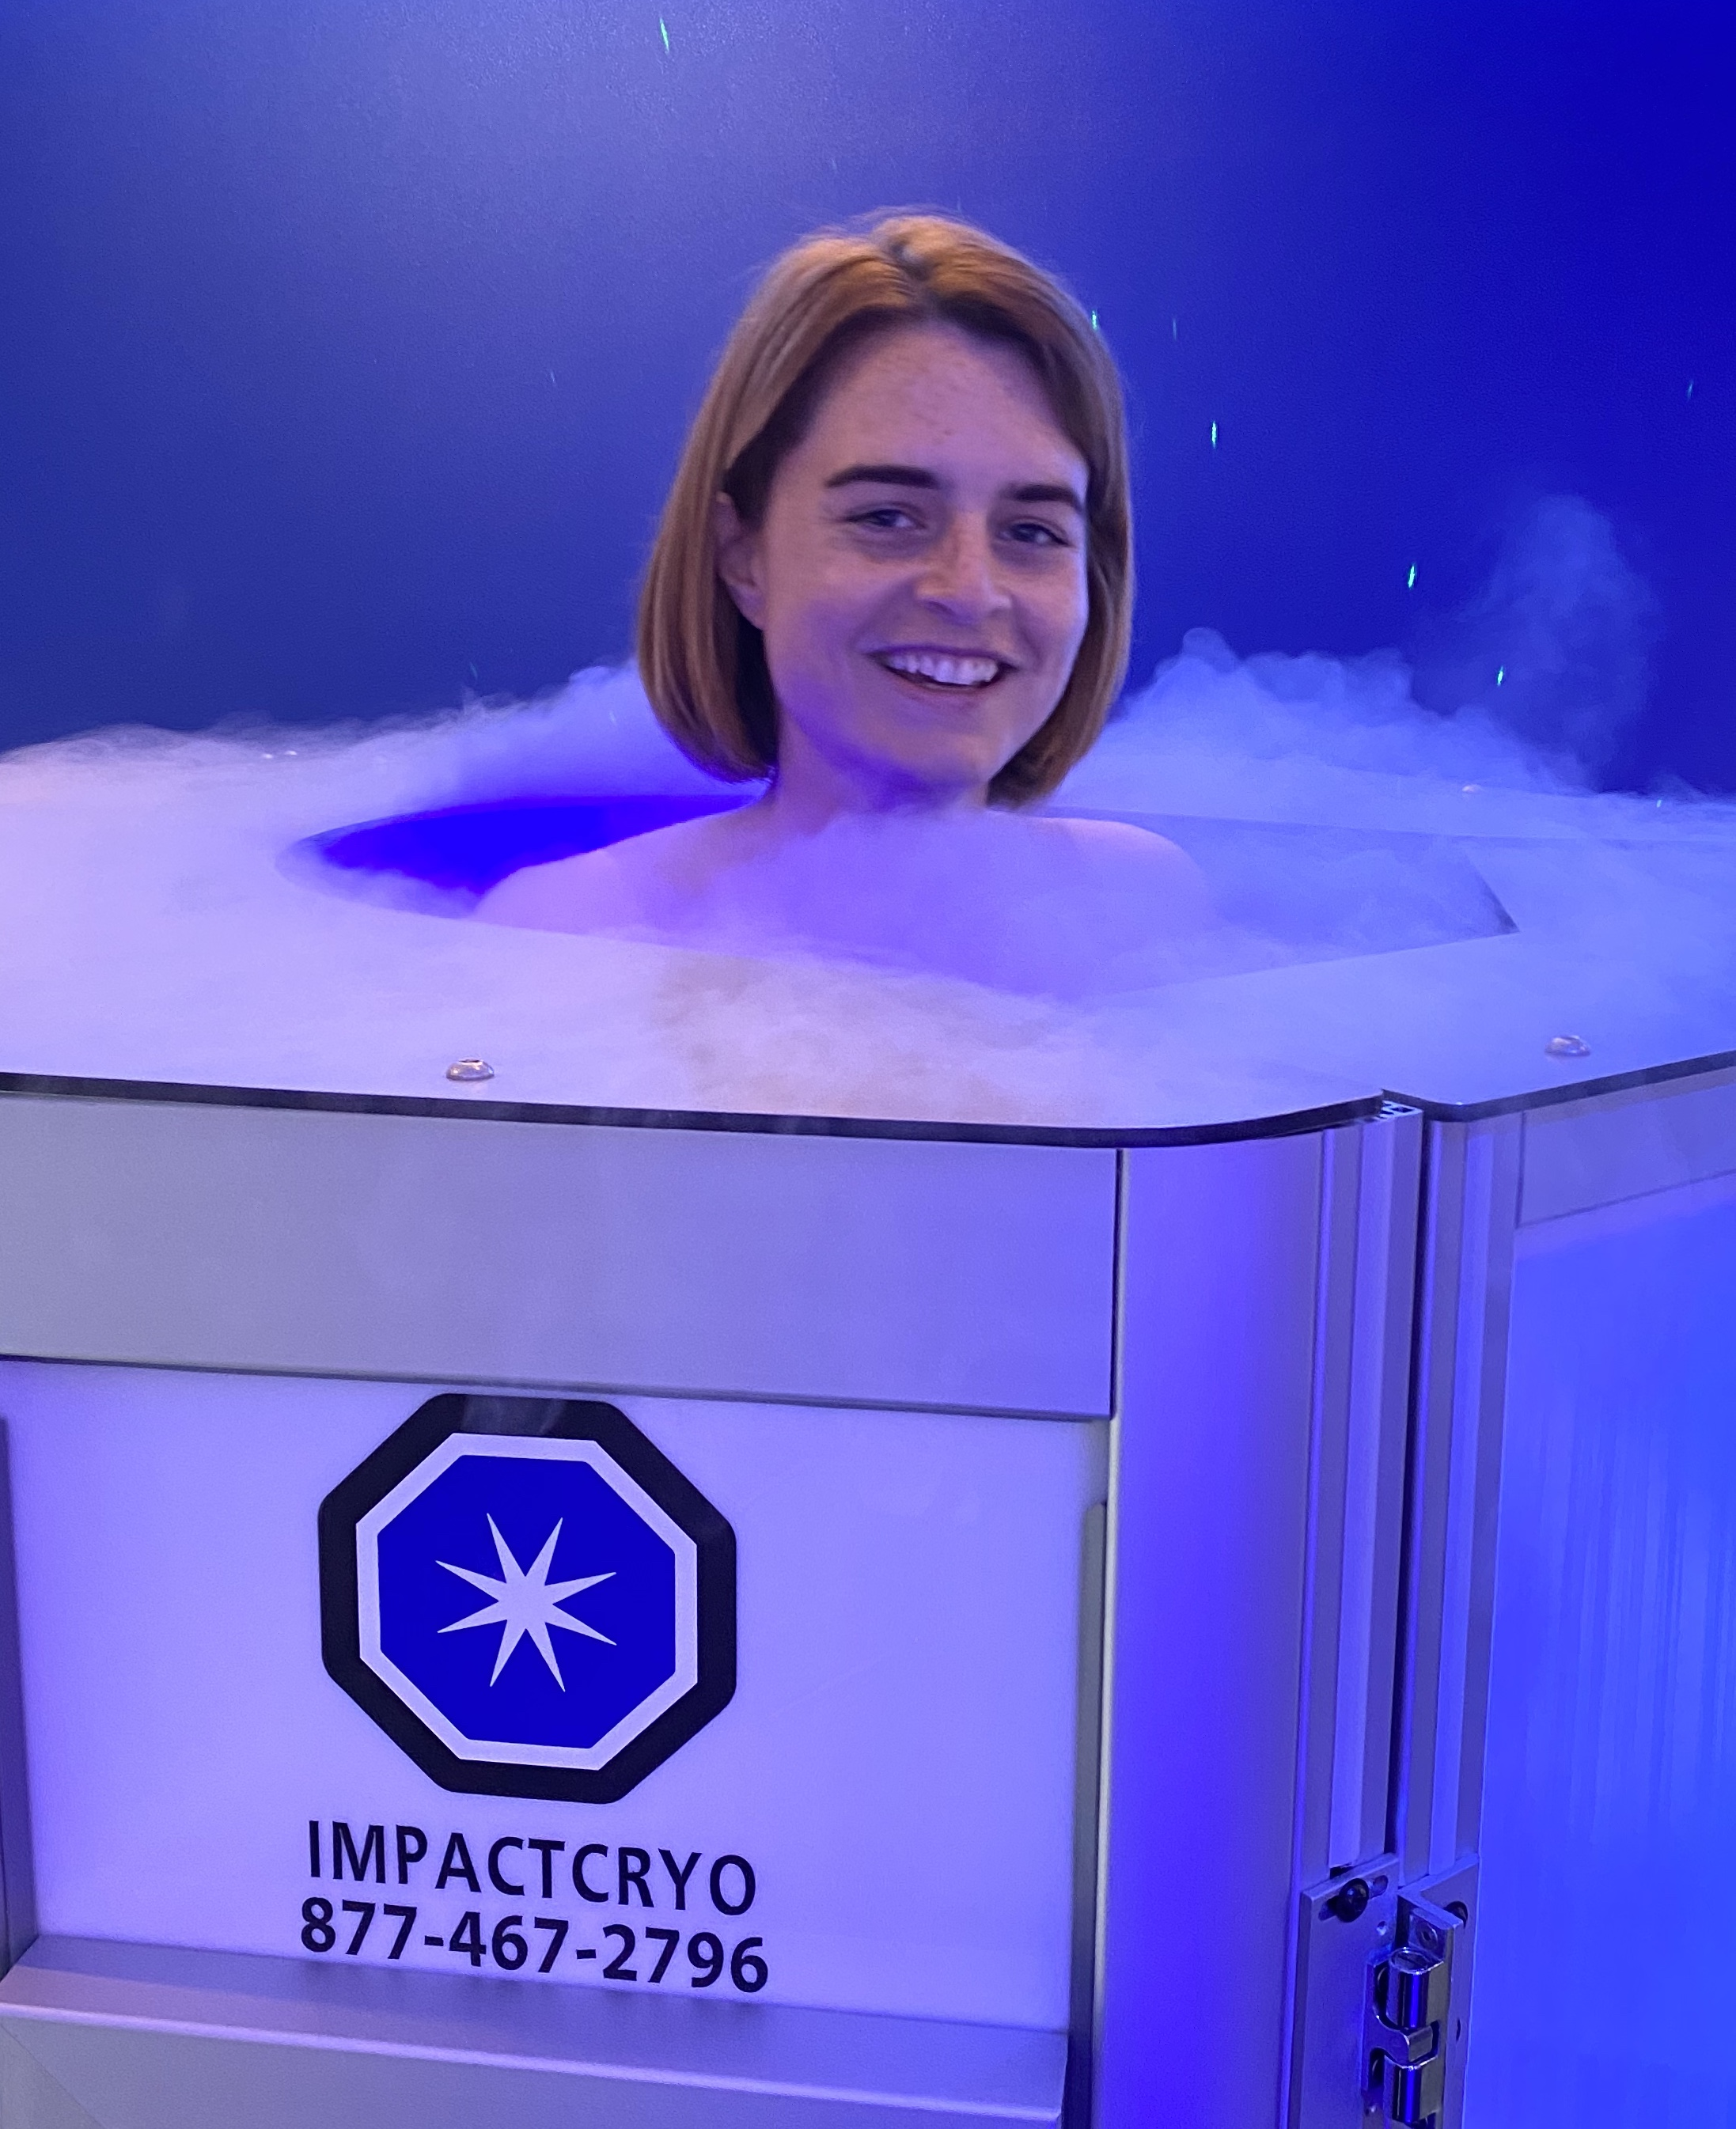 Cryo Tokyo Cool Recovery Machine in Action